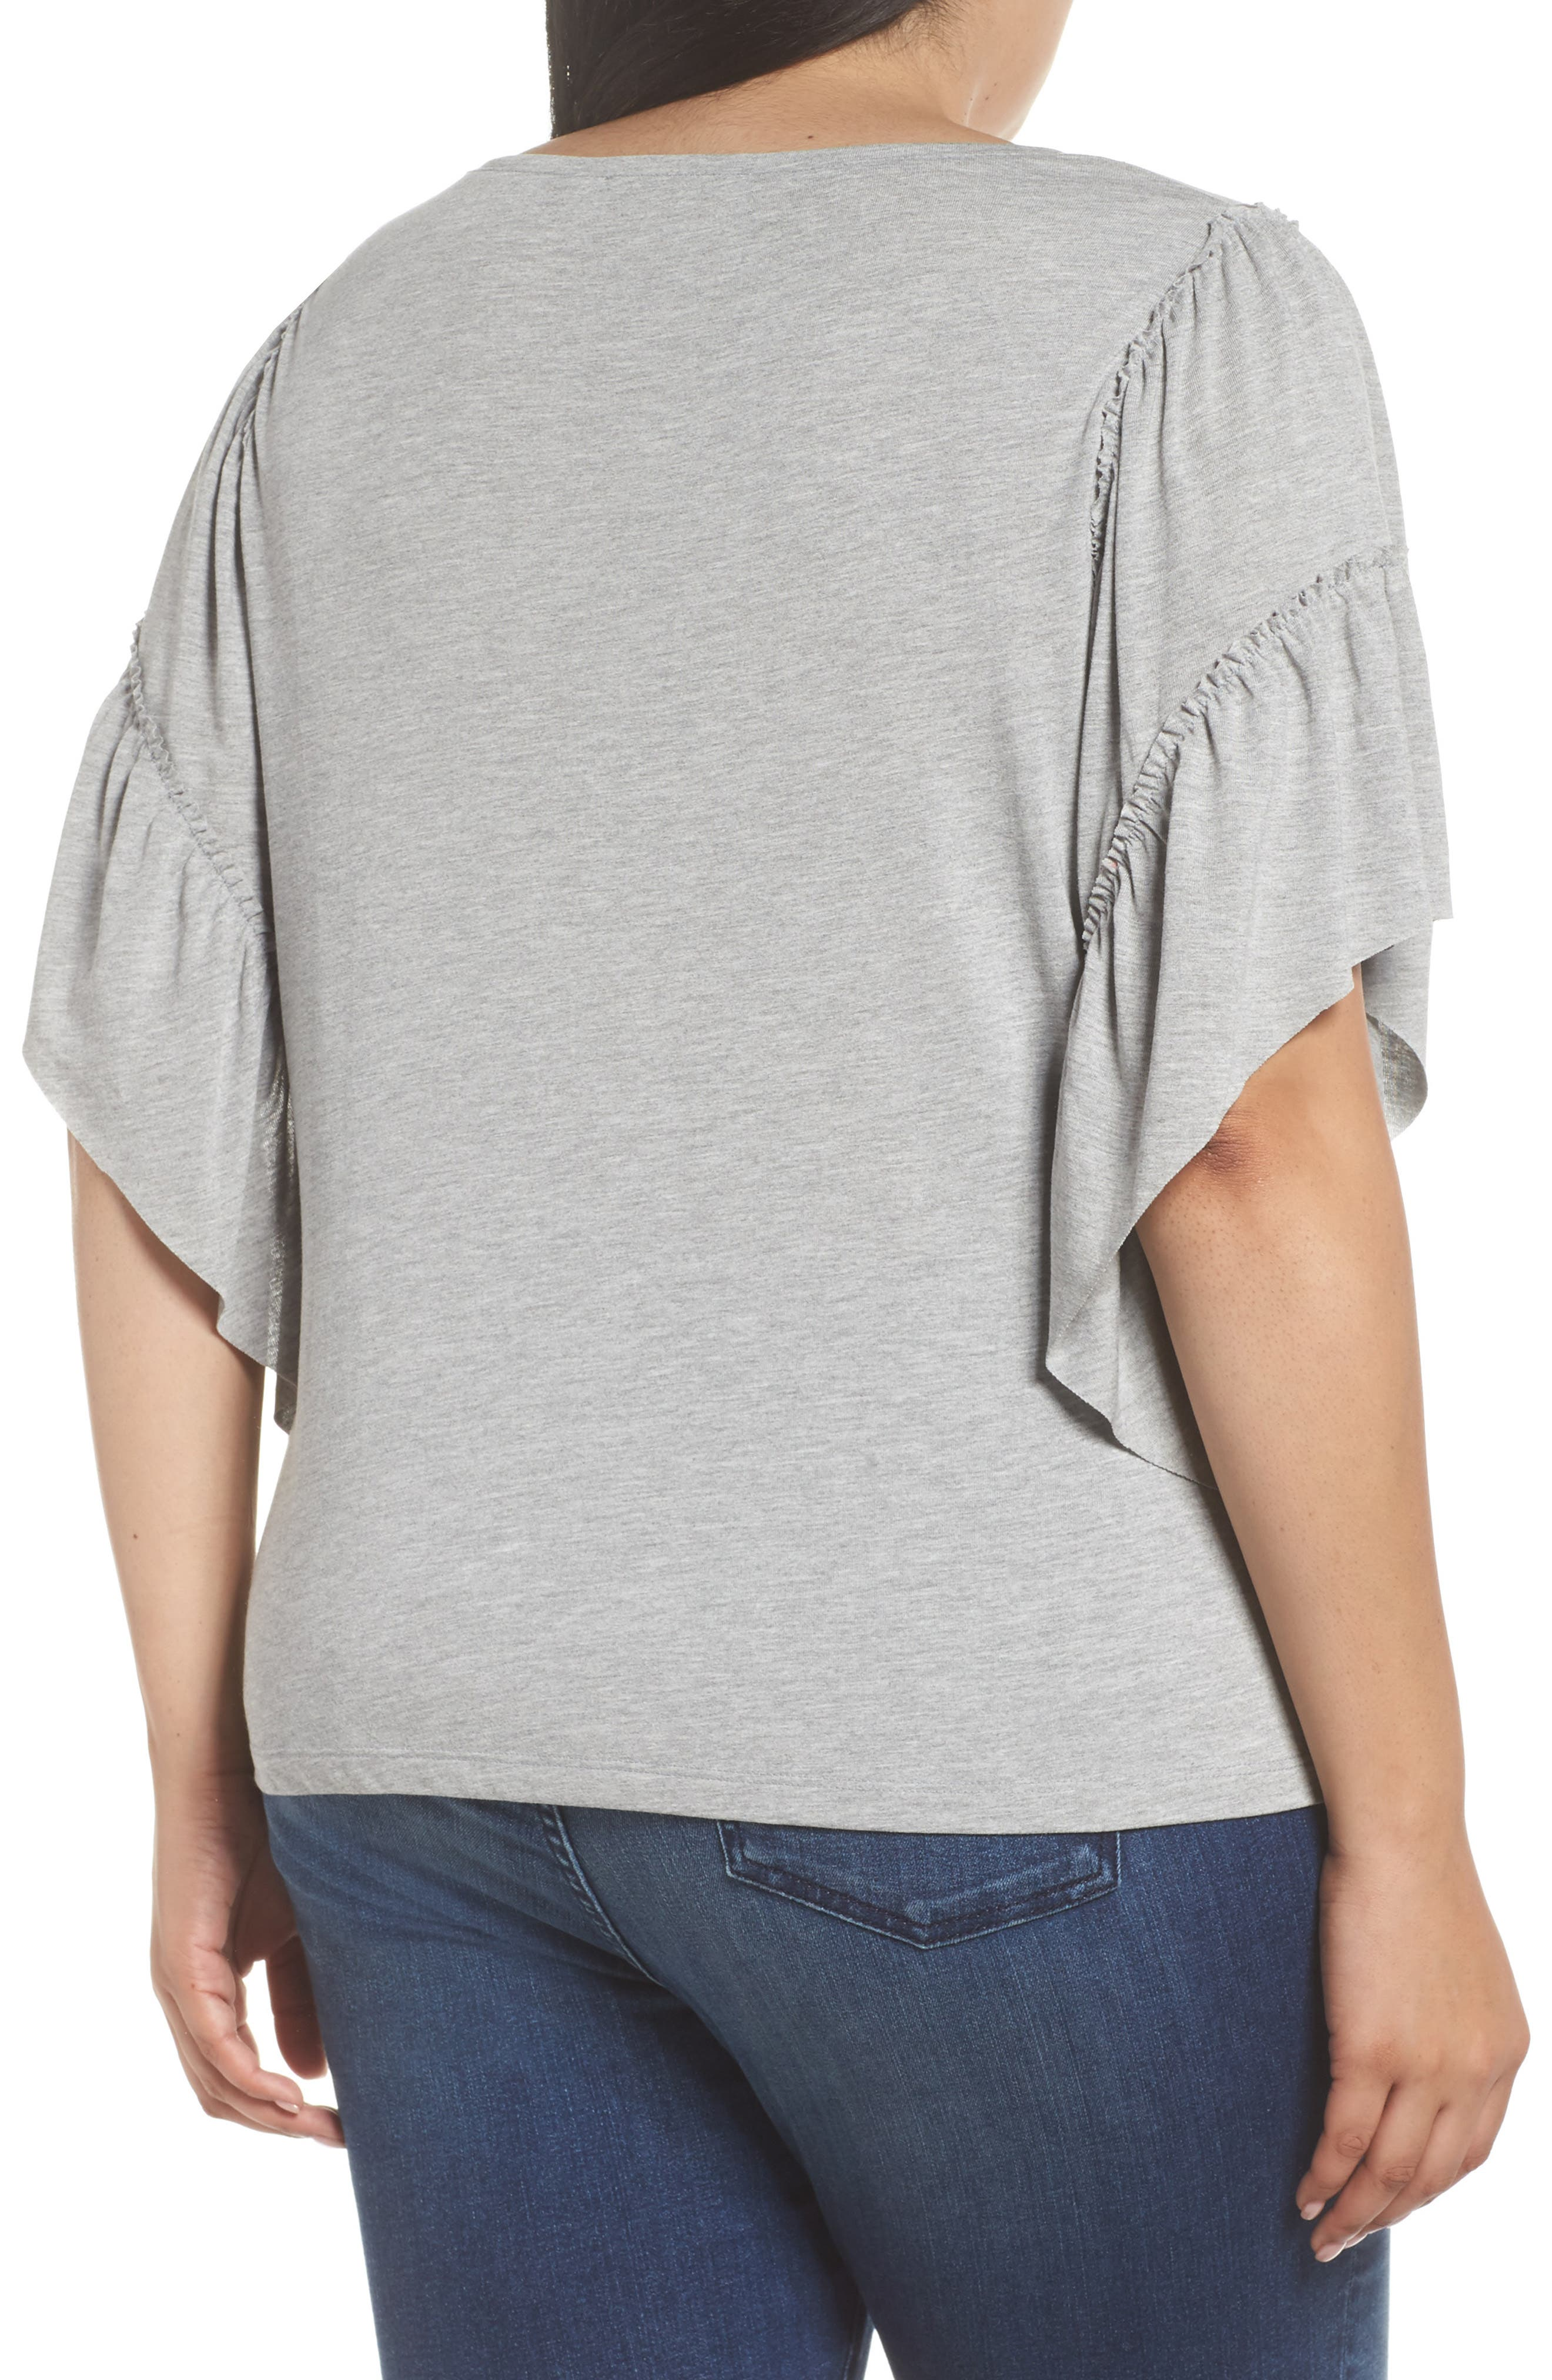 Frill Sleeve Tee,                             Alternate thumbnail 2, color,                             030